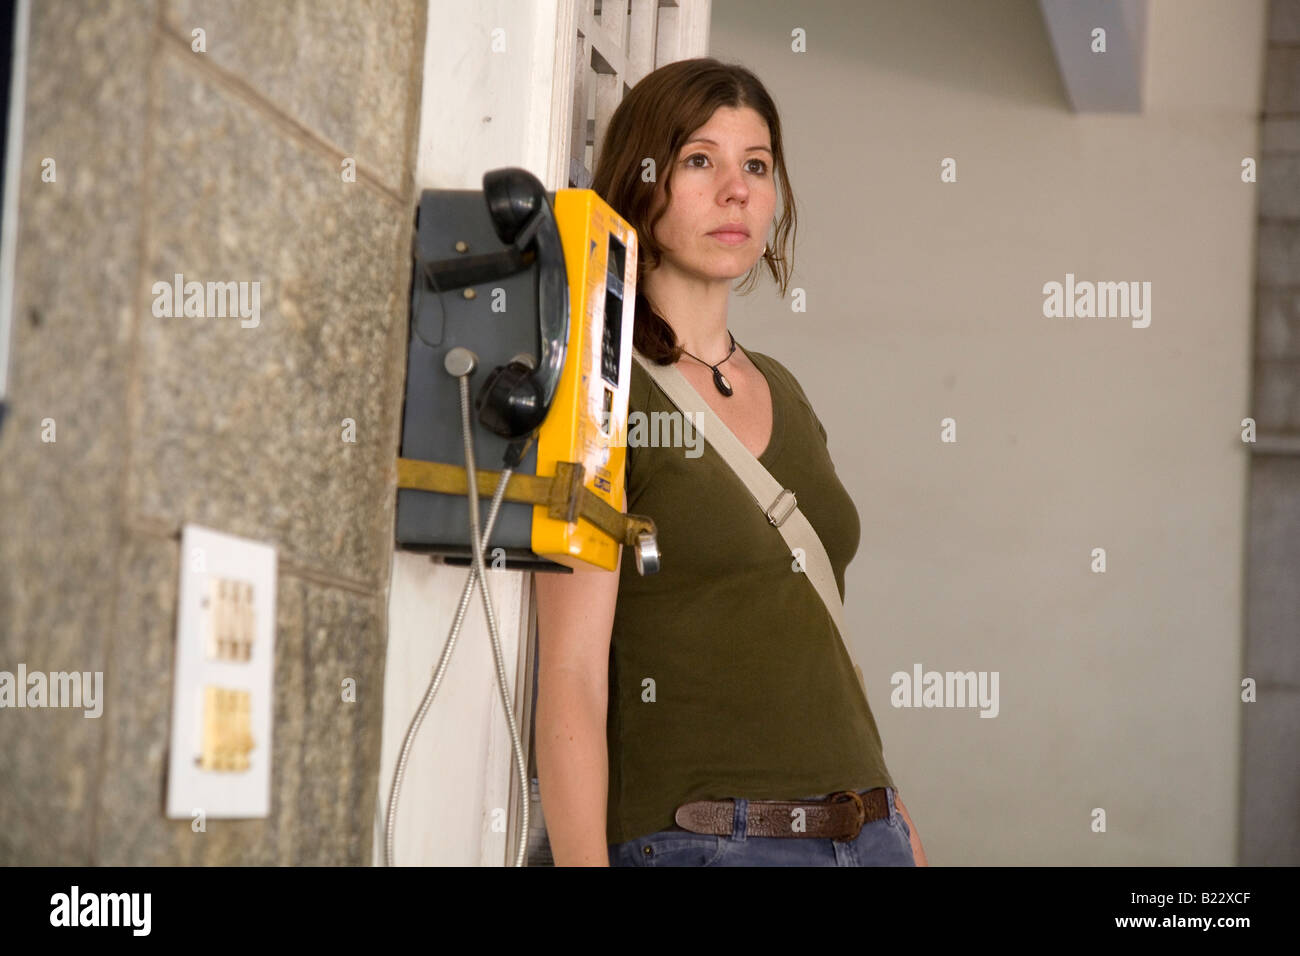 A woman waits by a payphone. - Stock Image